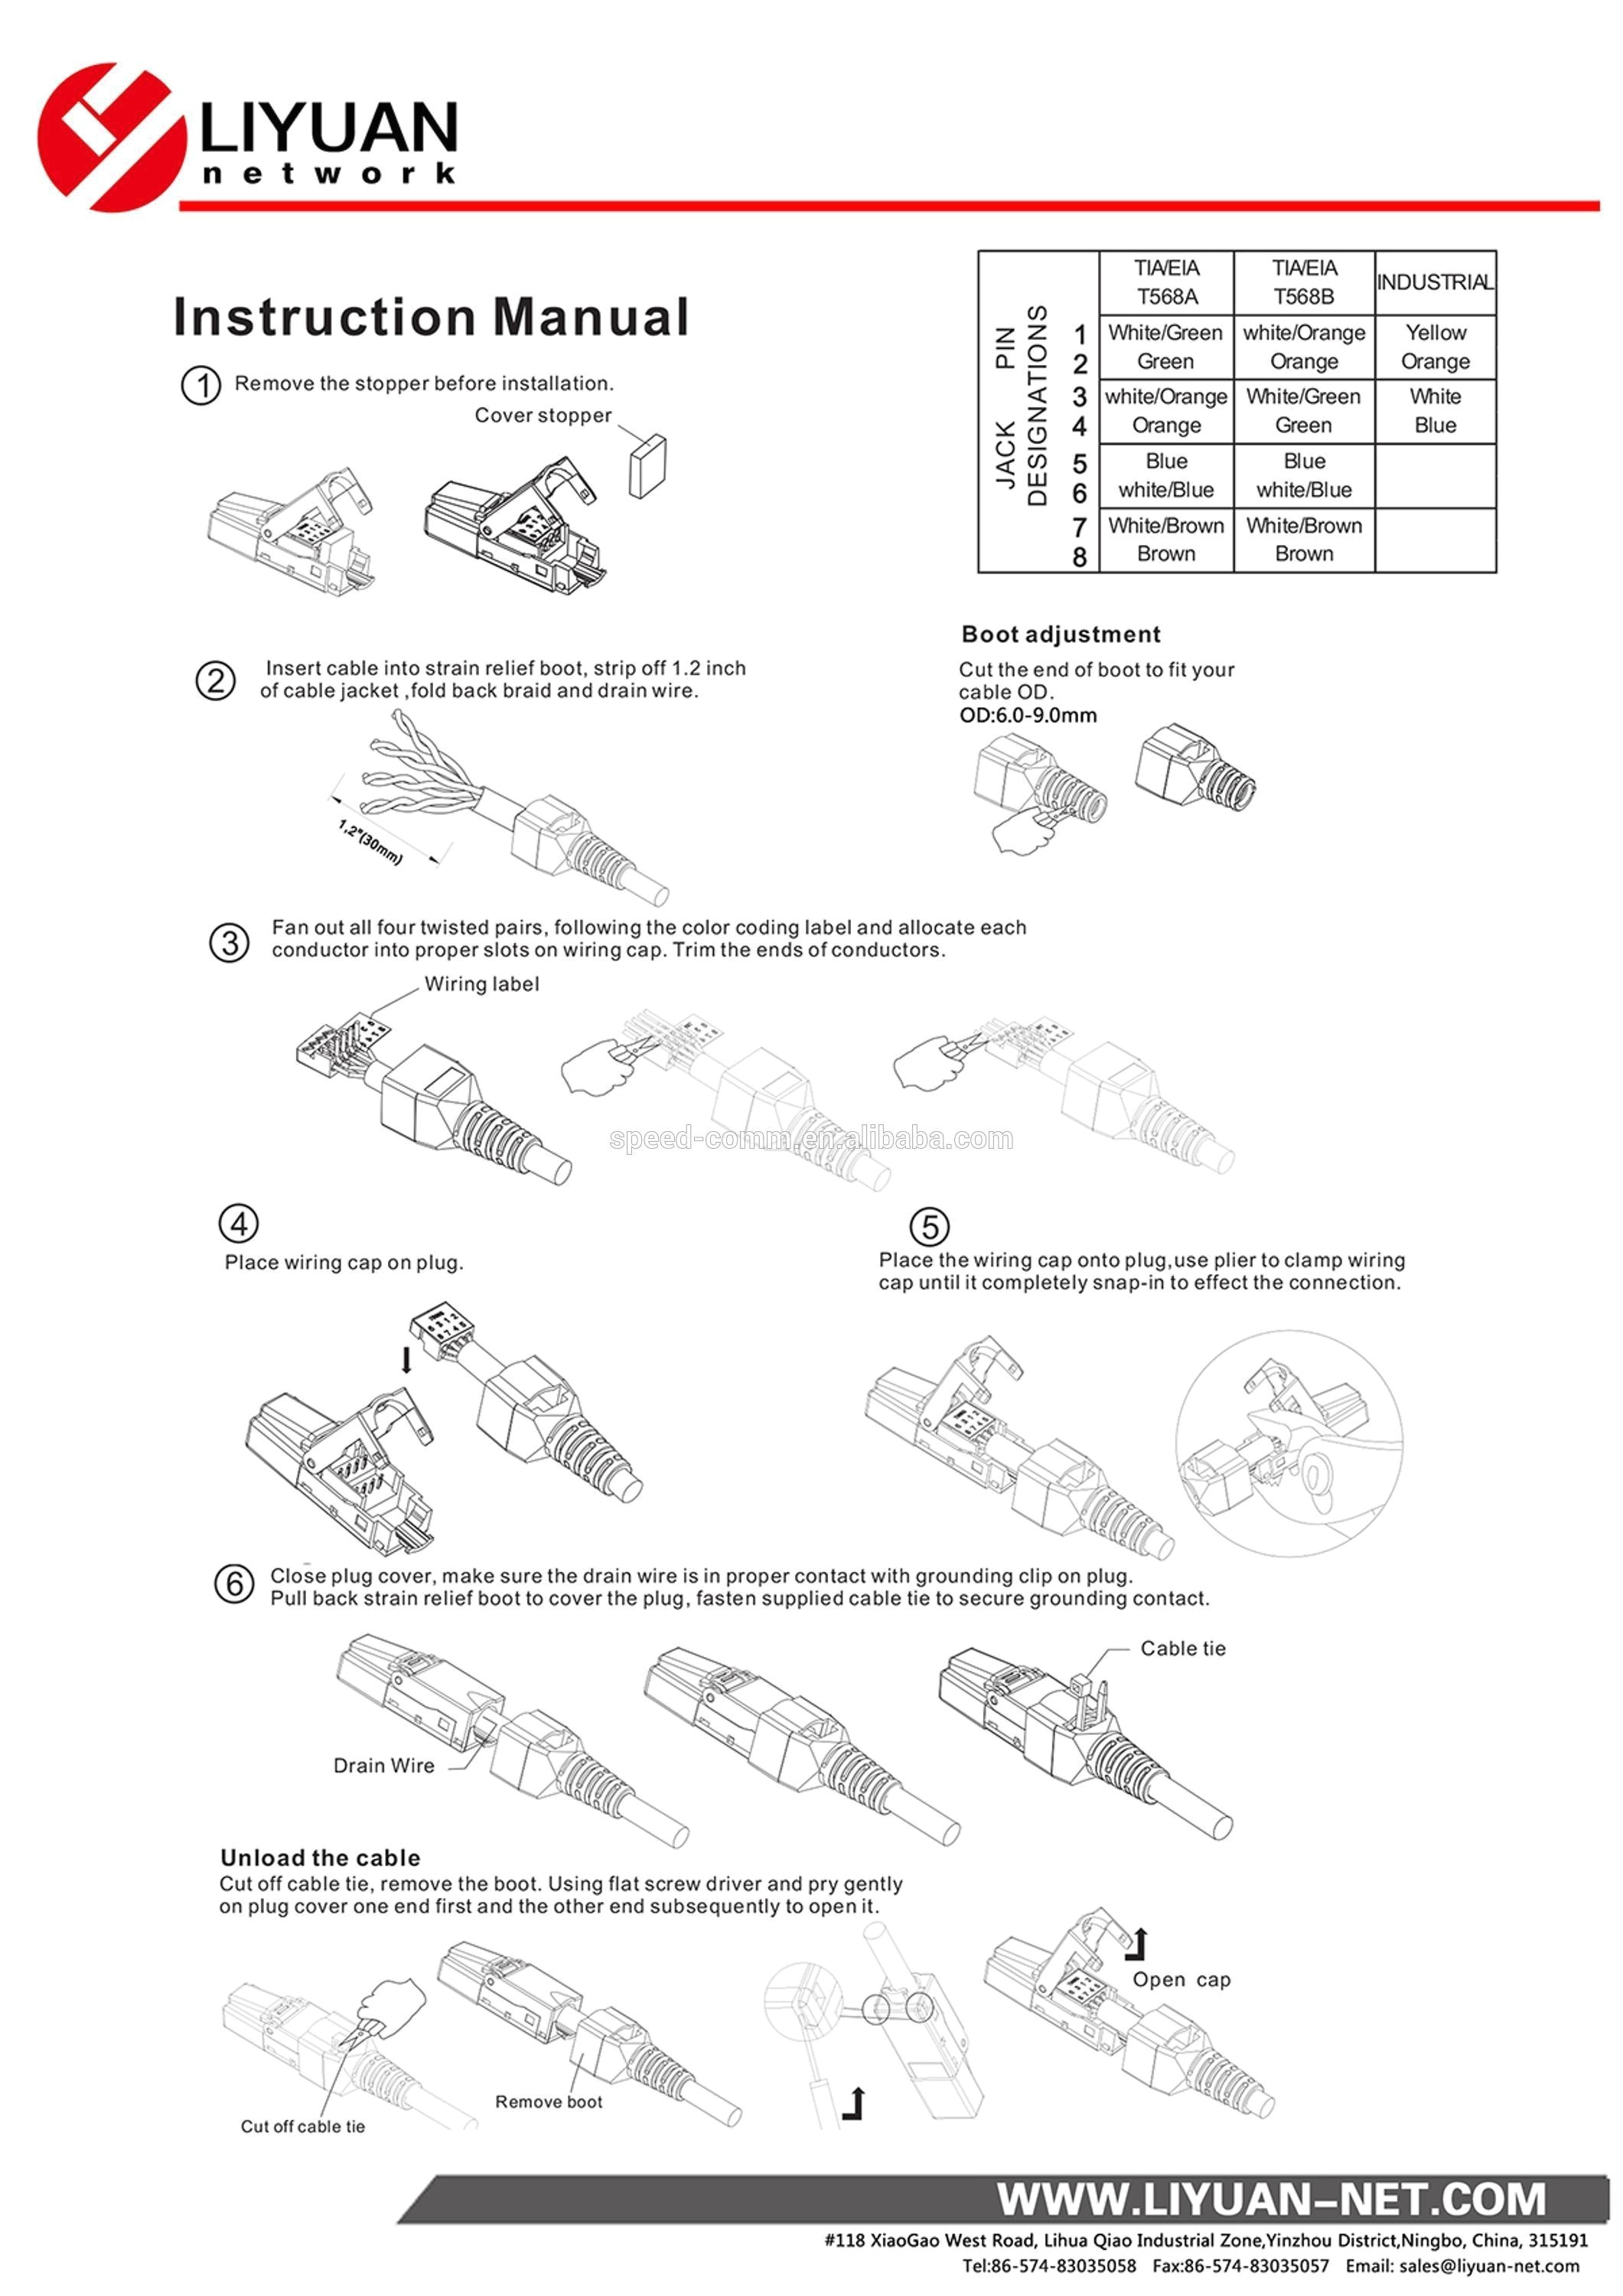 rj45 patch cable wiring diagram beautiful wiring diagram for cat5 cable simple wiring diagram rj45 print